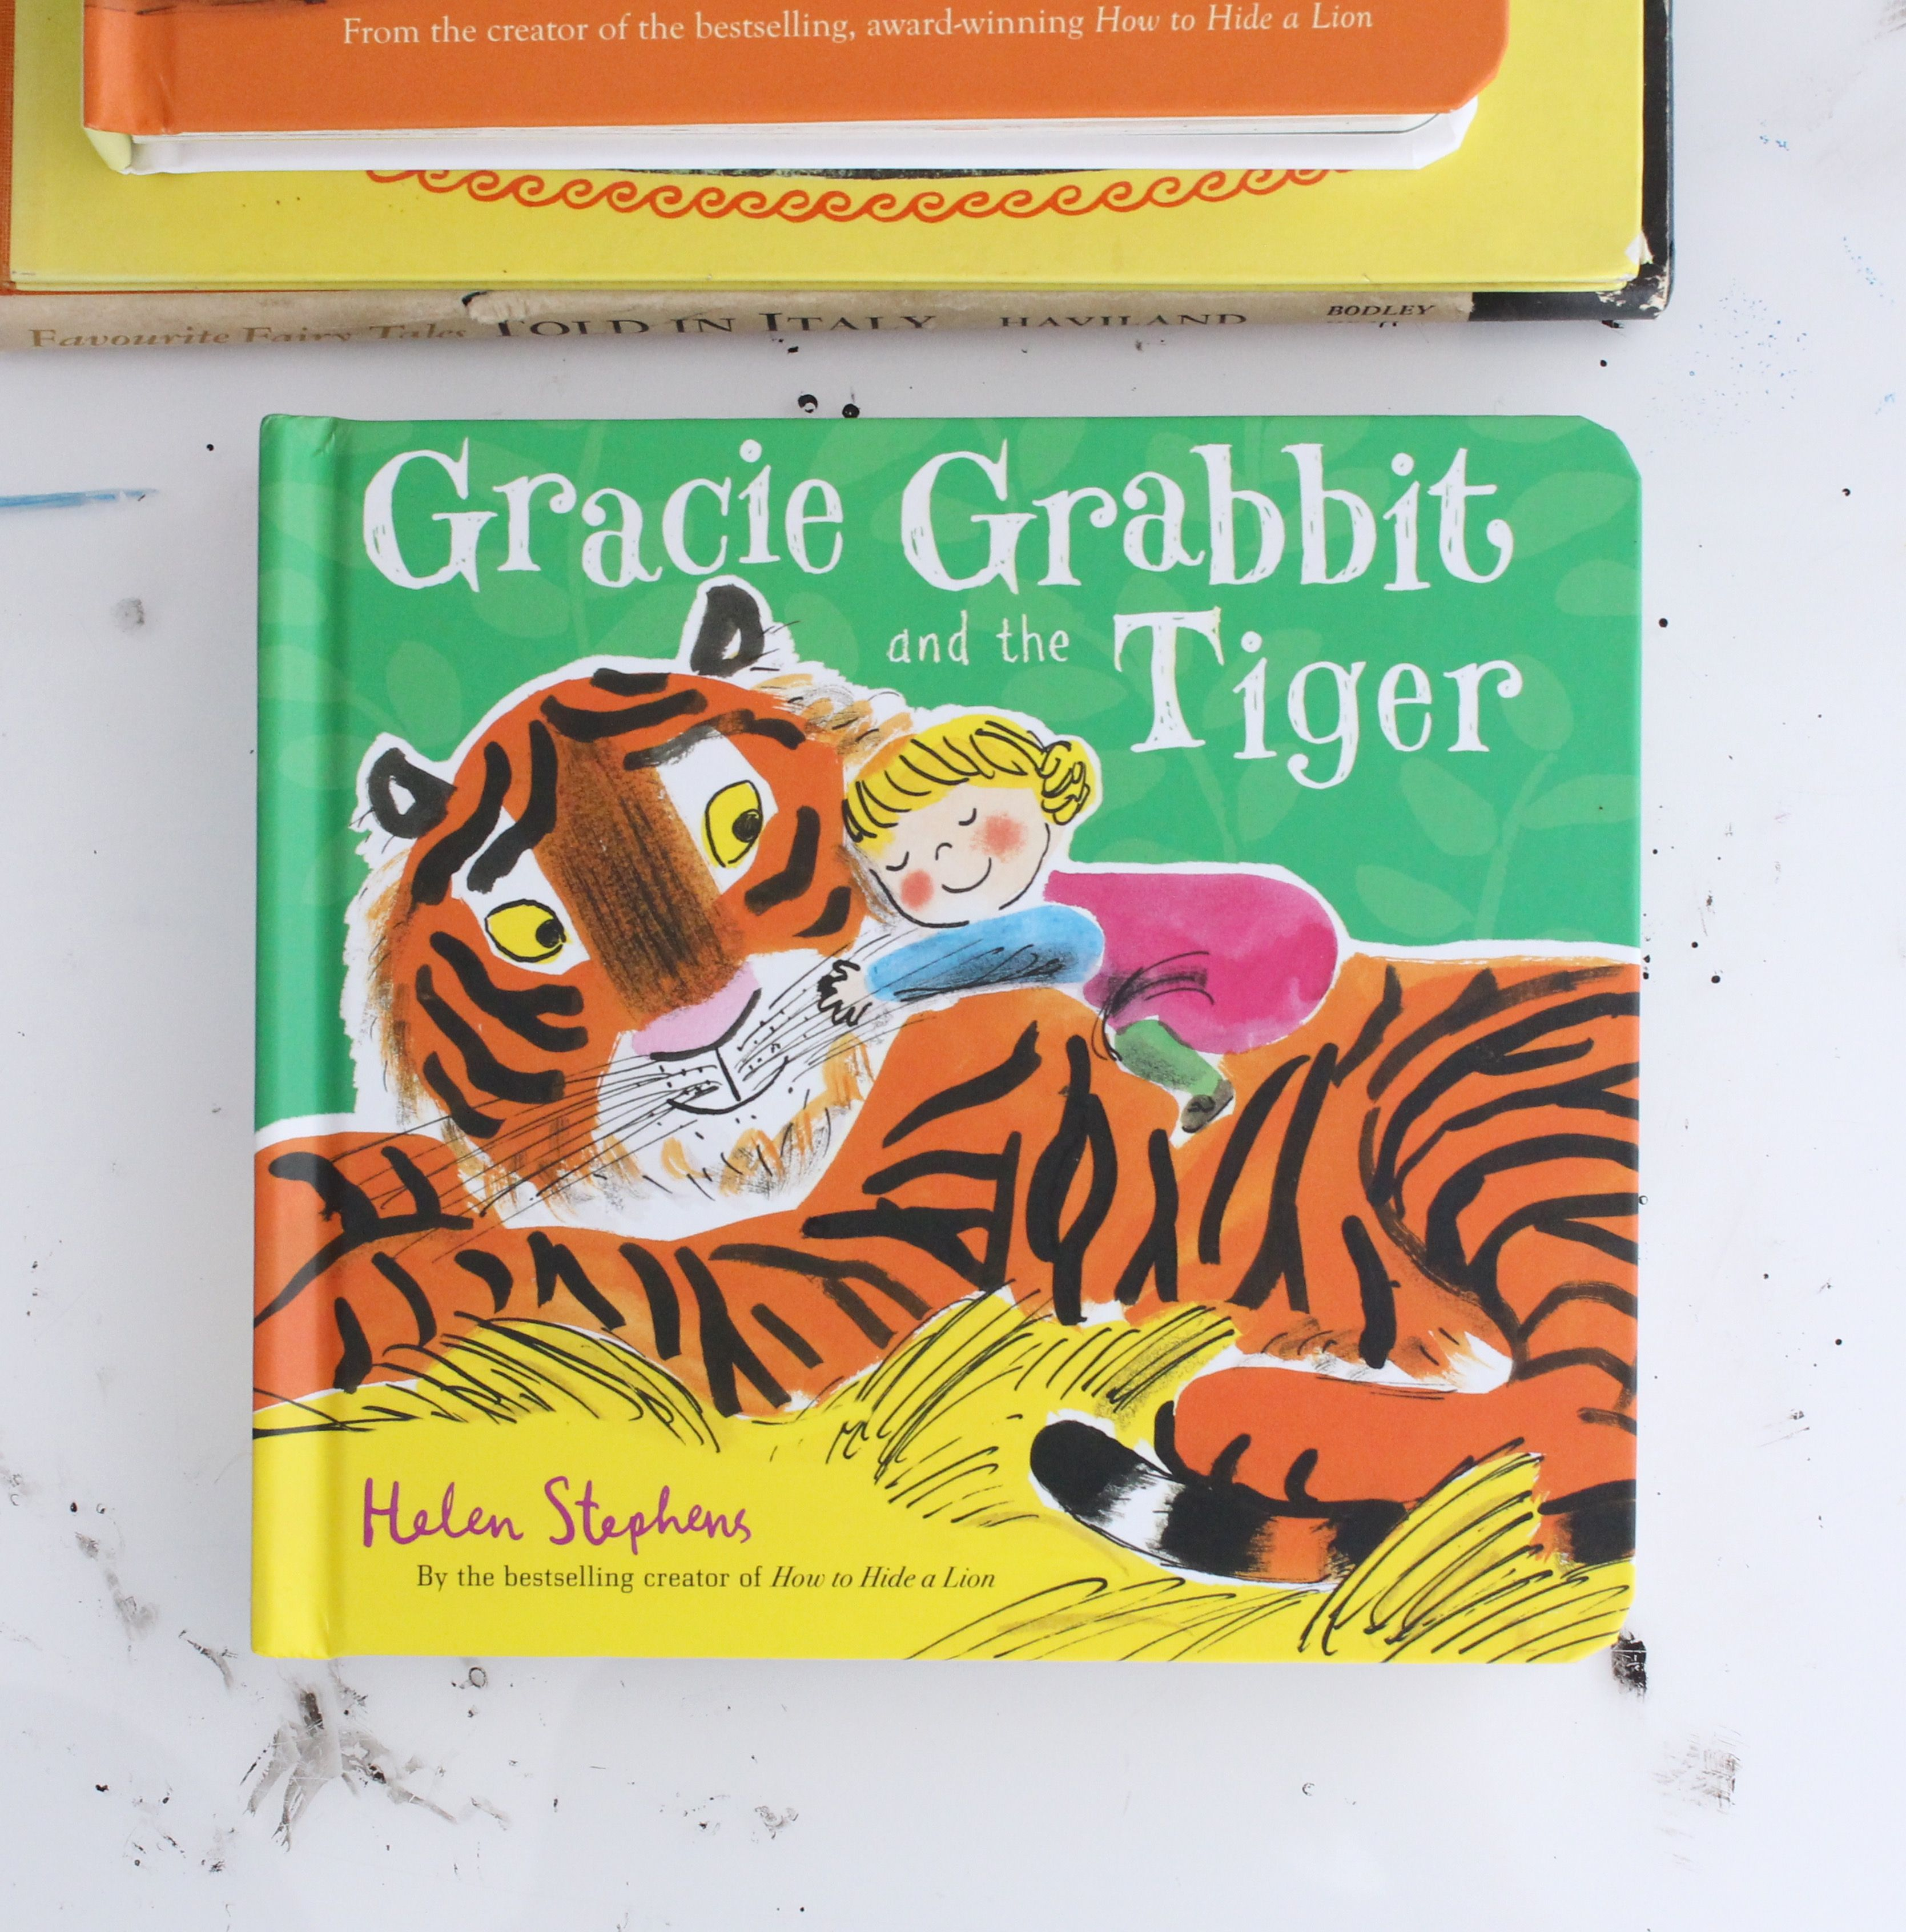 Gracie grabbit and the tiger is up for the federation of